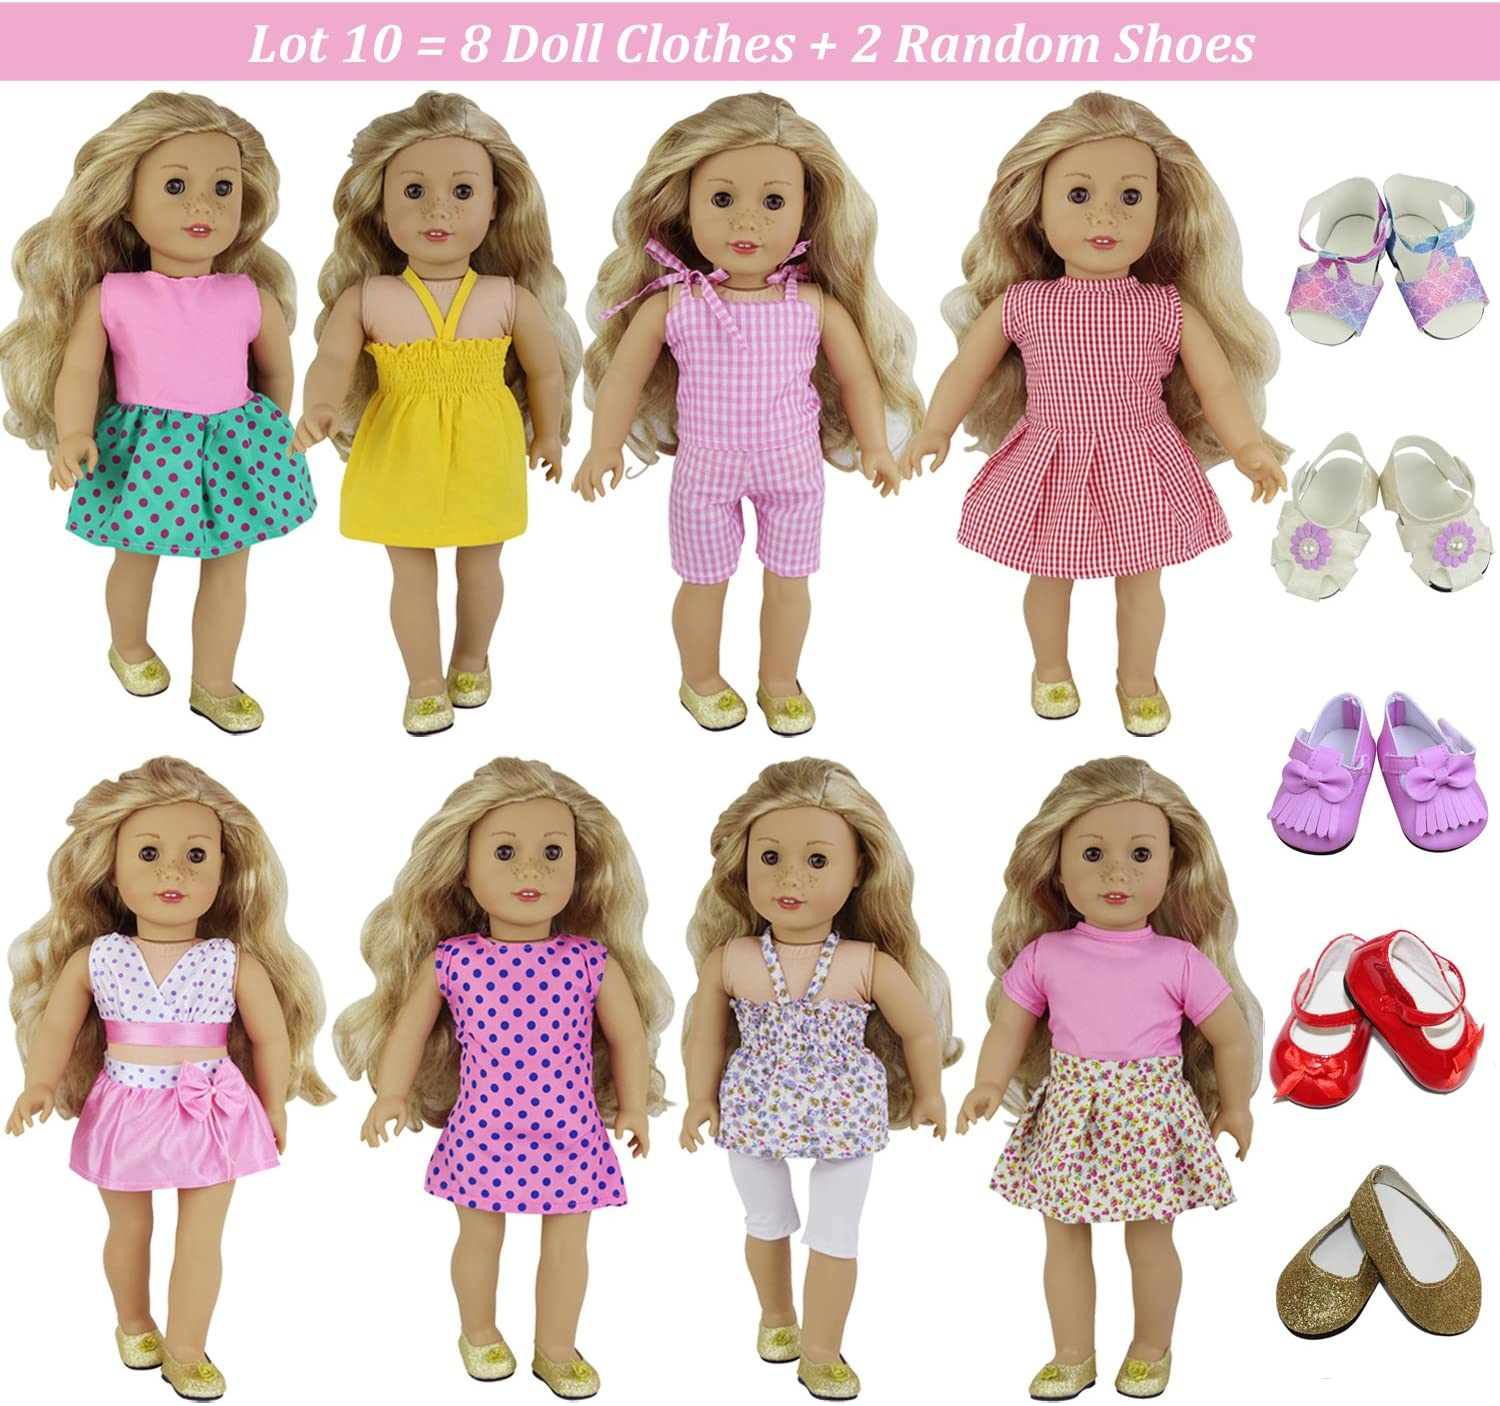 ZITA ELEMENT 6 Set of Daily Clothes and Dress for American 18 Inch Girl Doll Outfits